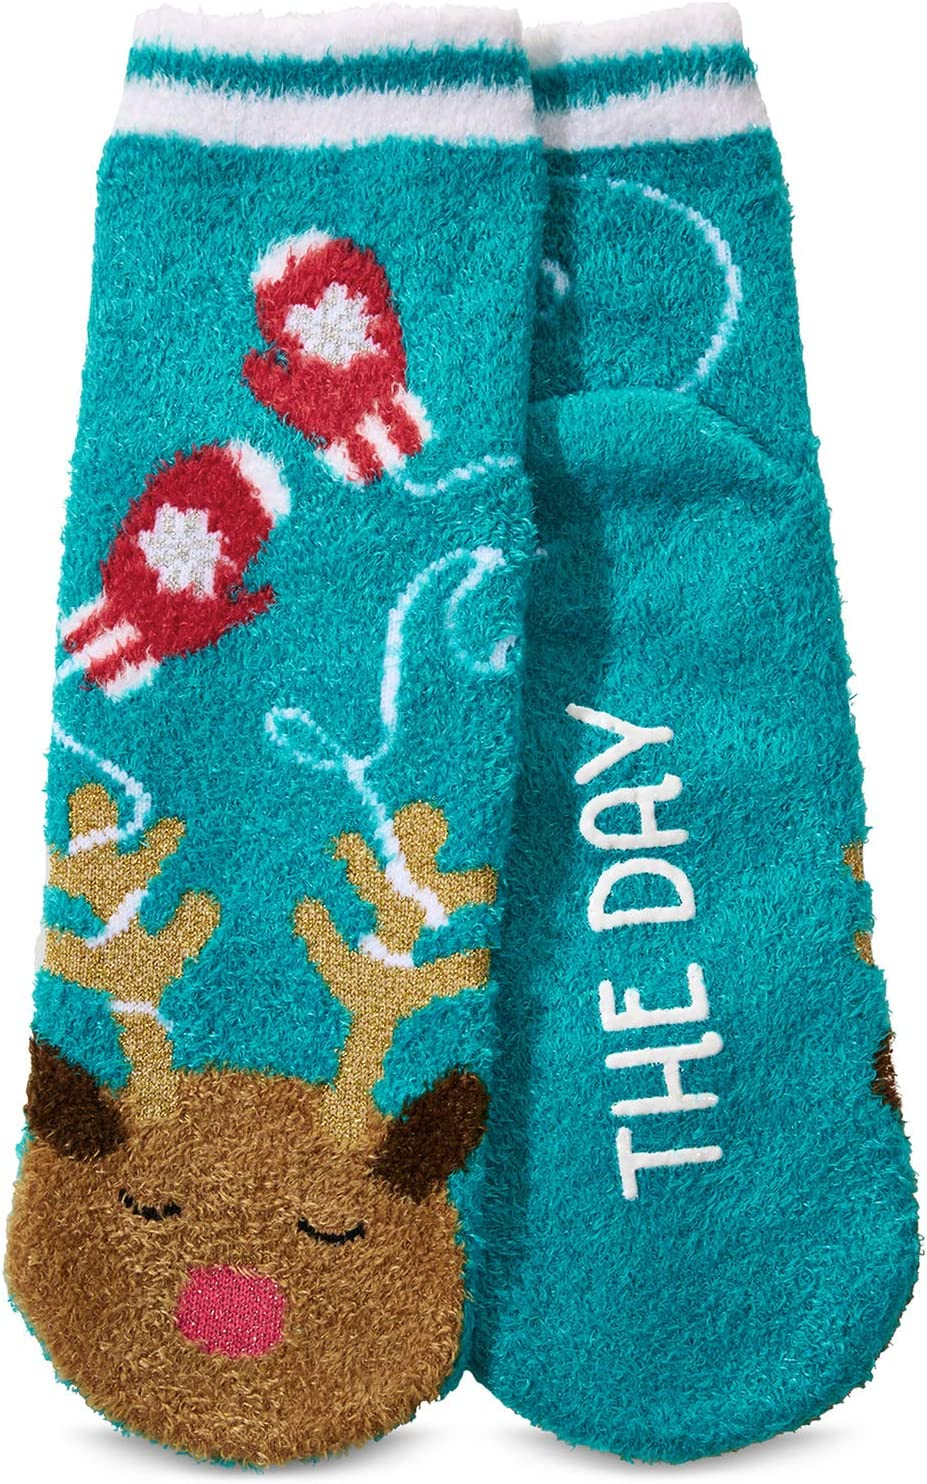 Bath and Body Works The Cozies Shea-Infused socks New RILEY the Reindeer